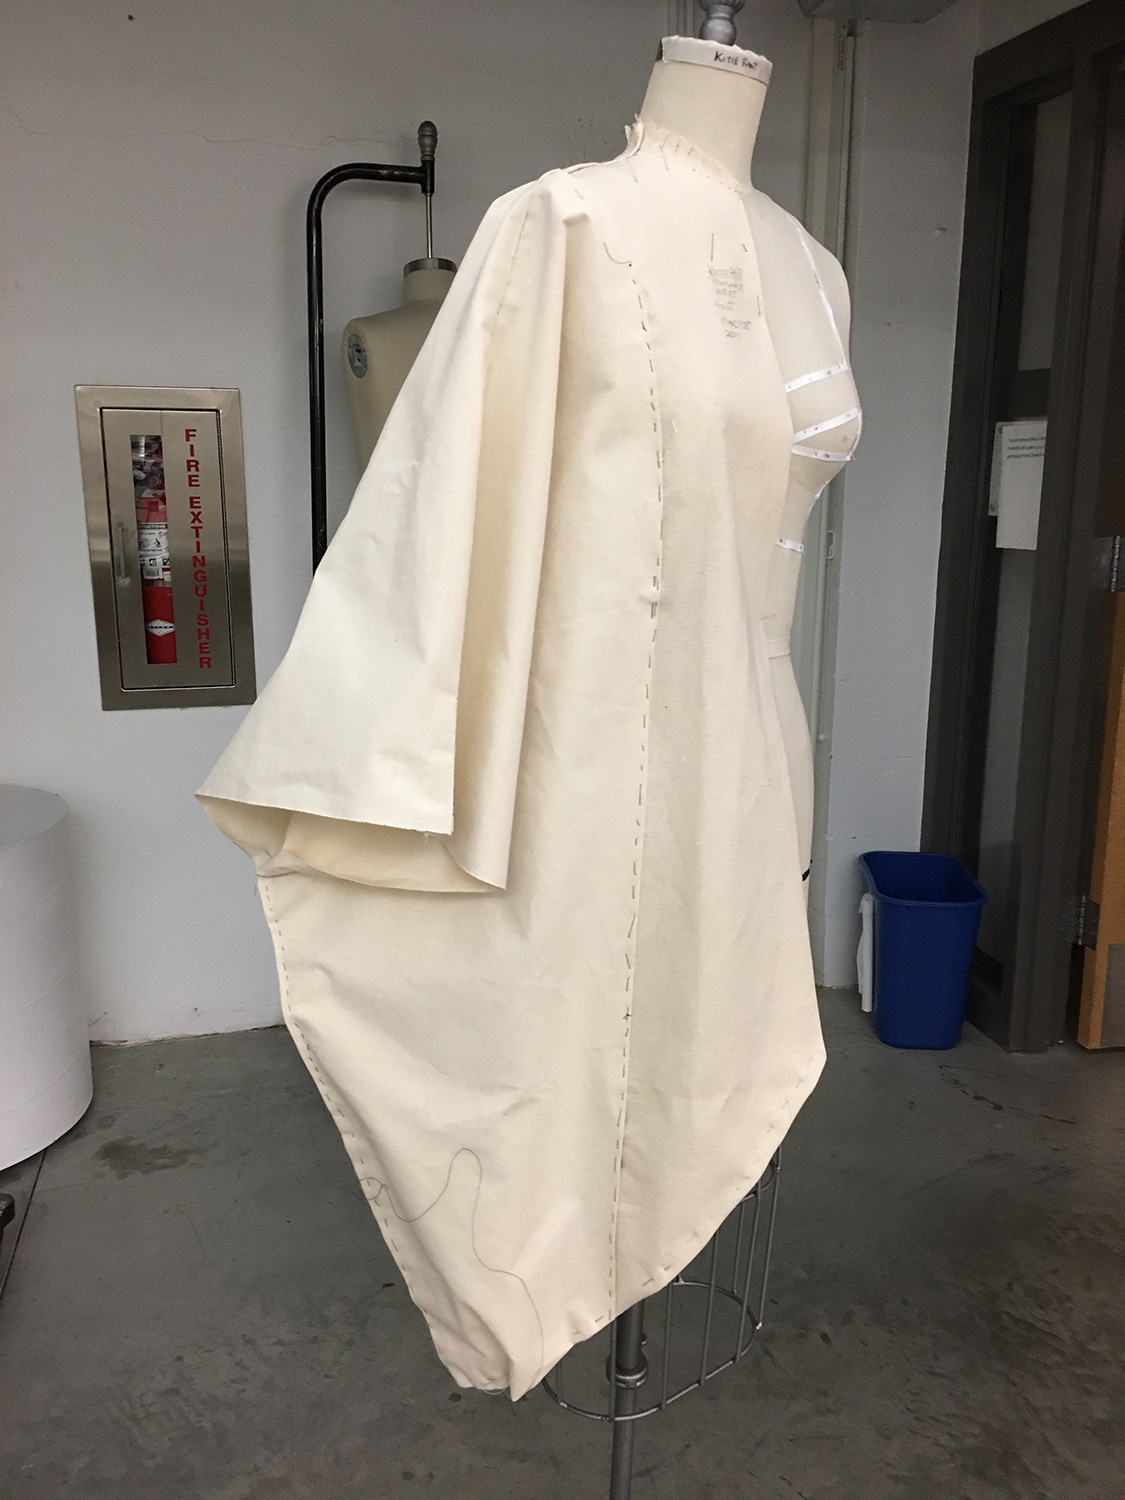 Originally, draped in canvas, I basted together the drape and marked the seam lines.